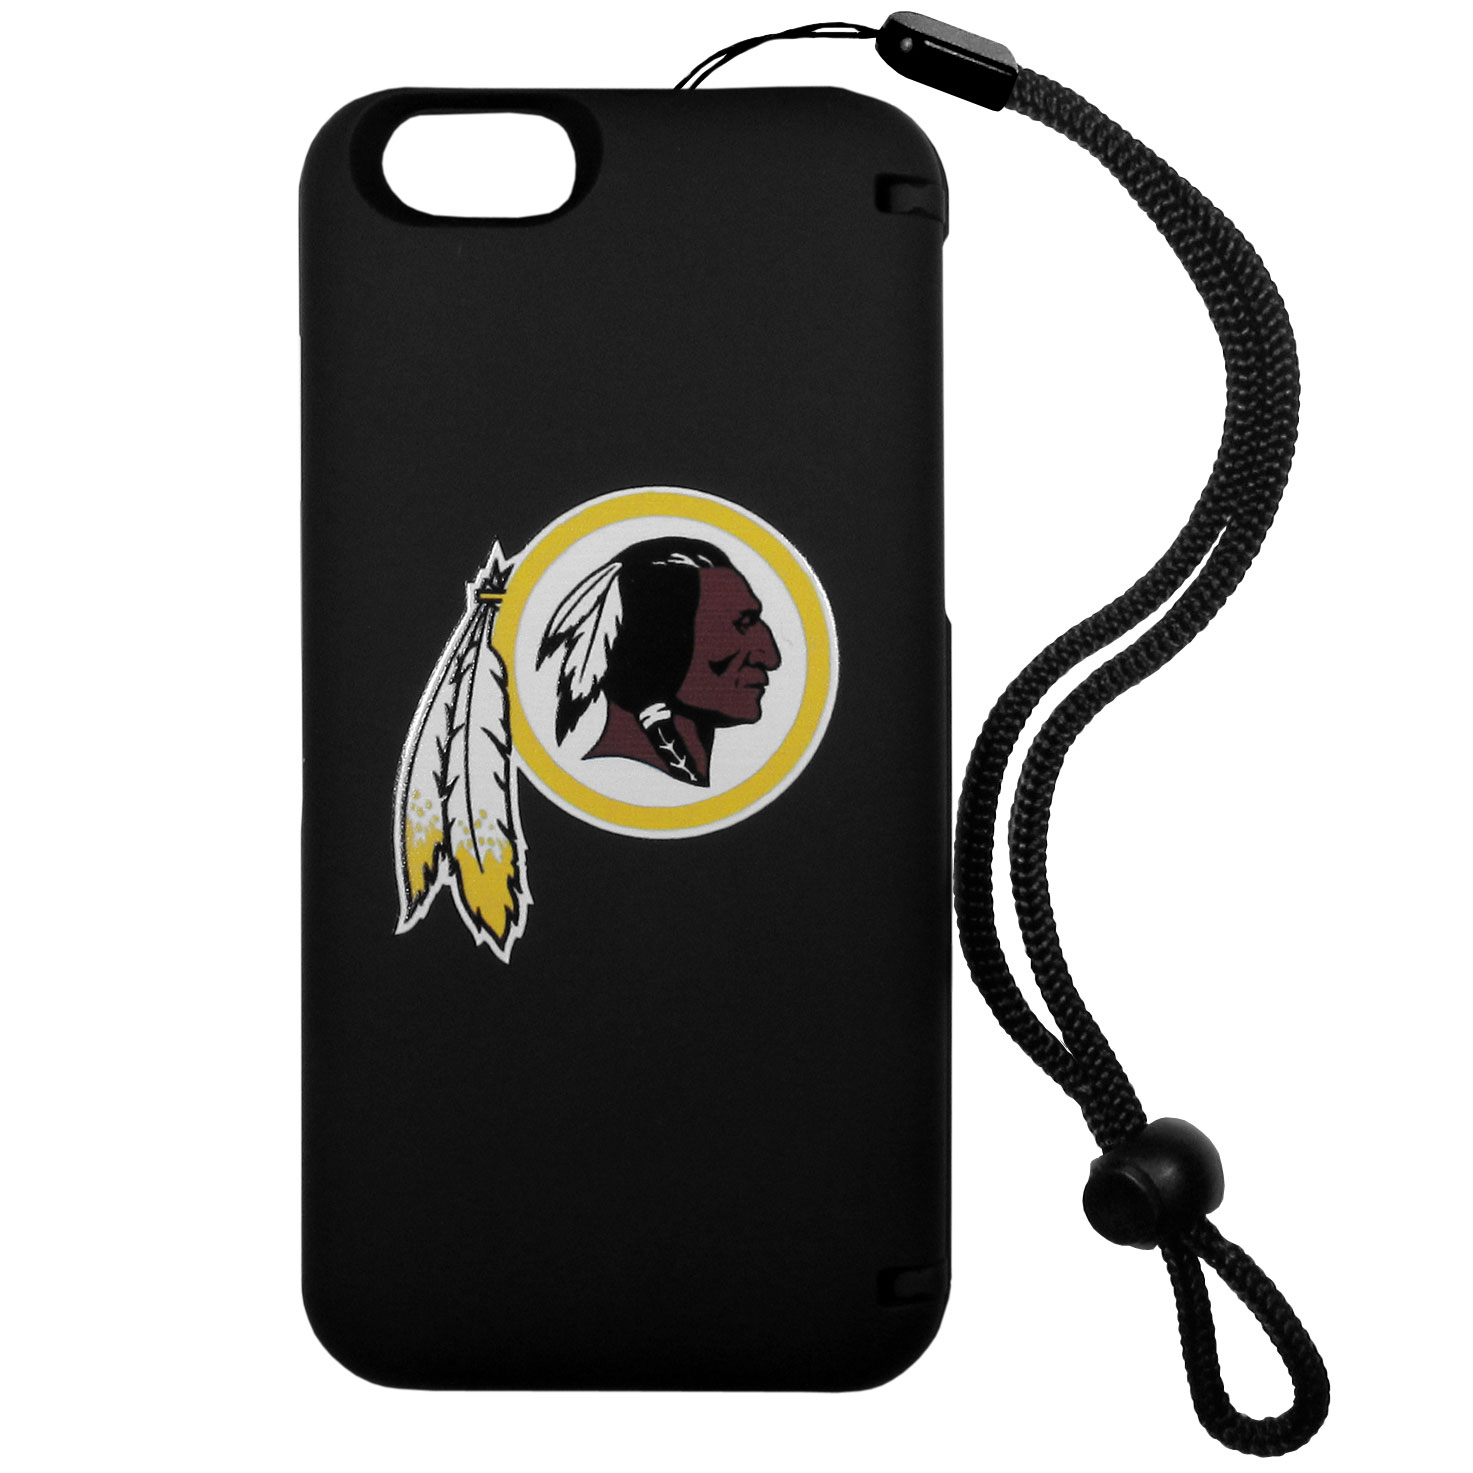 Washington Redskins iPhone 6 Everything Case - This case really does have everything but the kitchen sink! The hidden compartment lets you keep your cards, money and tickets to the big game safe and secure and has a compact mirror so you can make sure your game face is ready to go. It also comes with a kickstand to make chatting and watching videos a breeze. The wrist strap allows you to travel with ease with your everything case. If that's not enough, it also comes with the Washington Redskins logo printed in expert detail on the front.